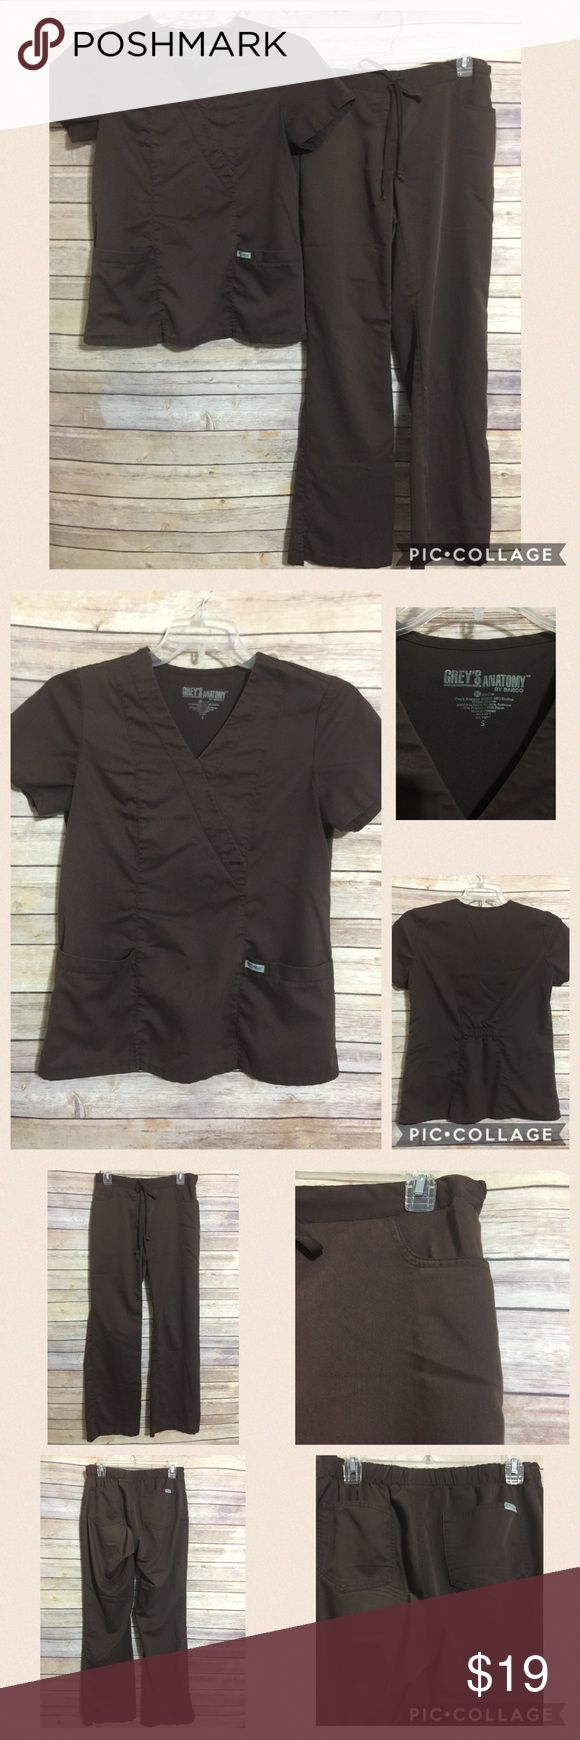 """Greys Anatomy Scrub Set Small Top Small Tall Pants Please notice Size of Top and pants   • Condition: Pant hems are slightly worn (see last pic)  • Color: Chocolate Brown  Measurements Laying Flat  • Top's Size- Small  • Top's Length - 24""""  • Top's Chest(around) - 38""""  • Top's Shoulder to Shoulder - 15""""  • Pants size - Small Tall  • Pants Waist (around) - 29""""  • Pants Rise - 9""""  • Pants Inseam - 31"""""""" Grey's Anatomy Other"""